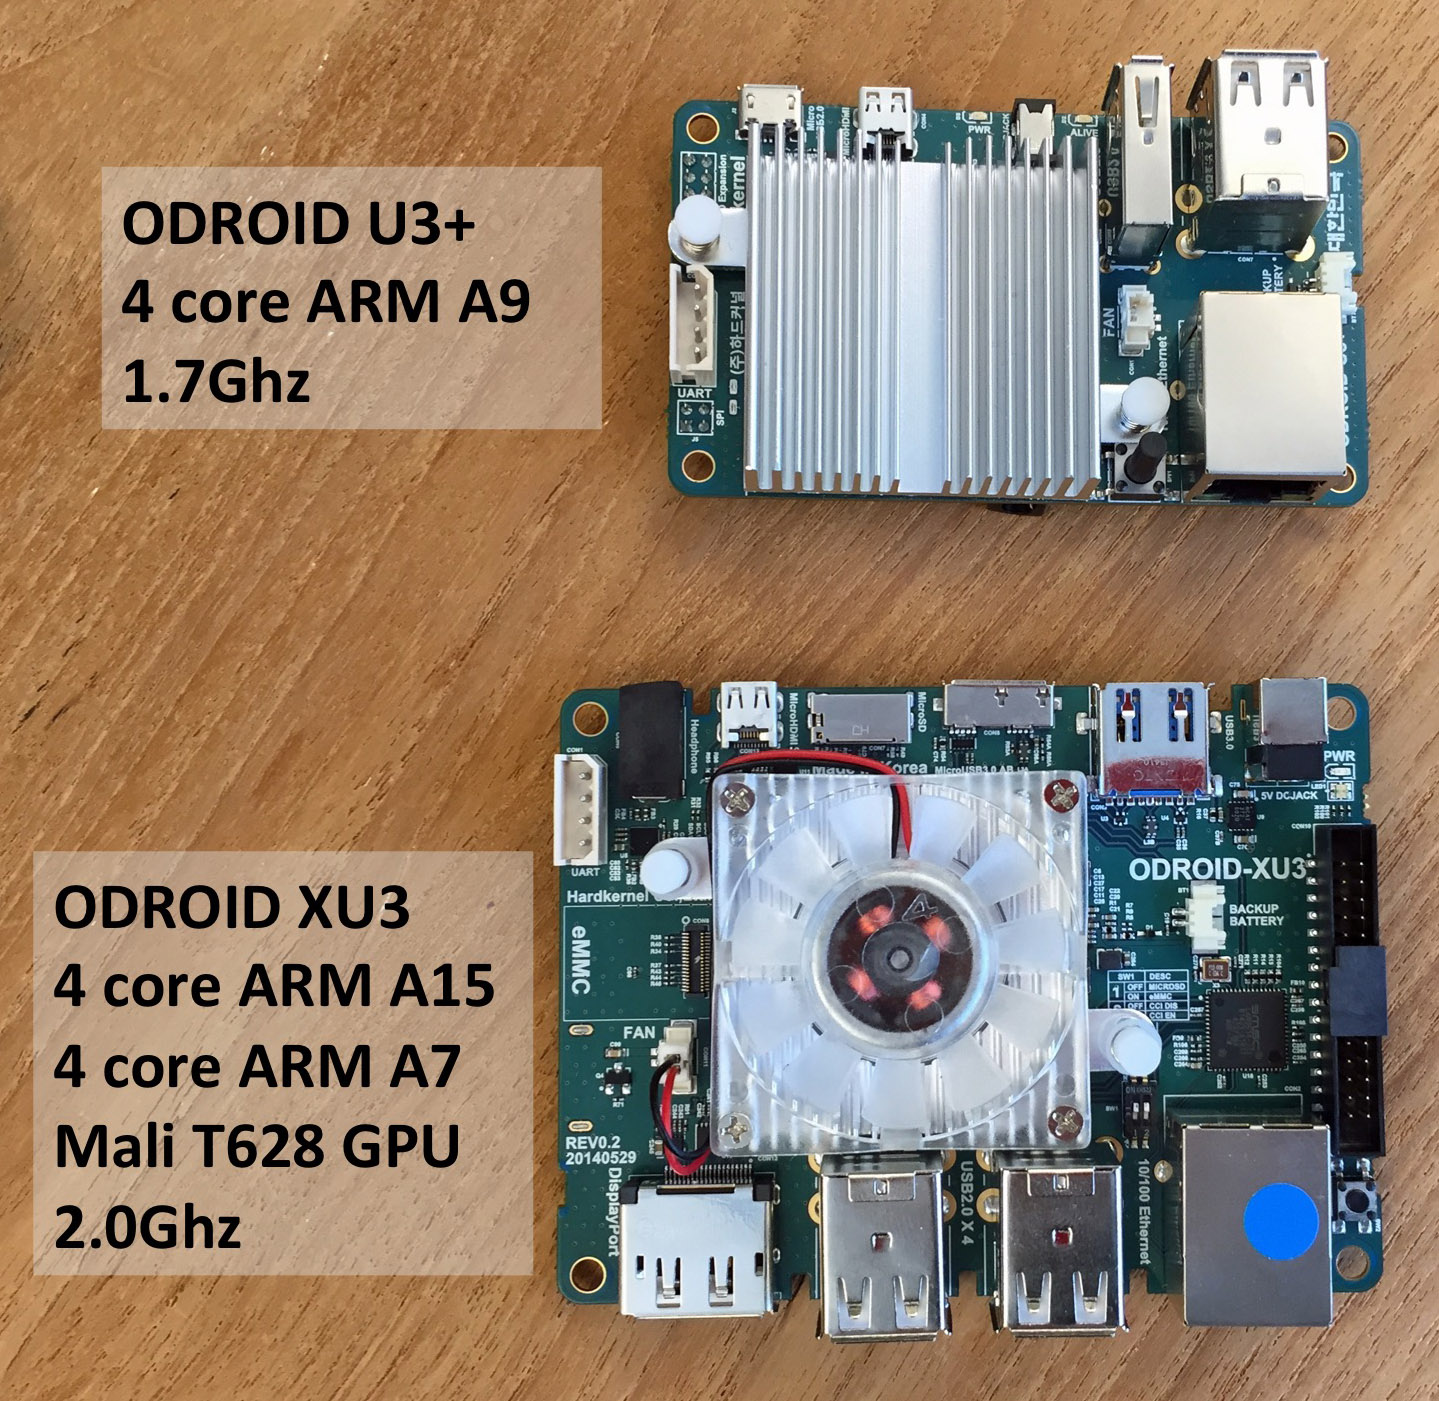 The ODROID U3 with big sister XU3